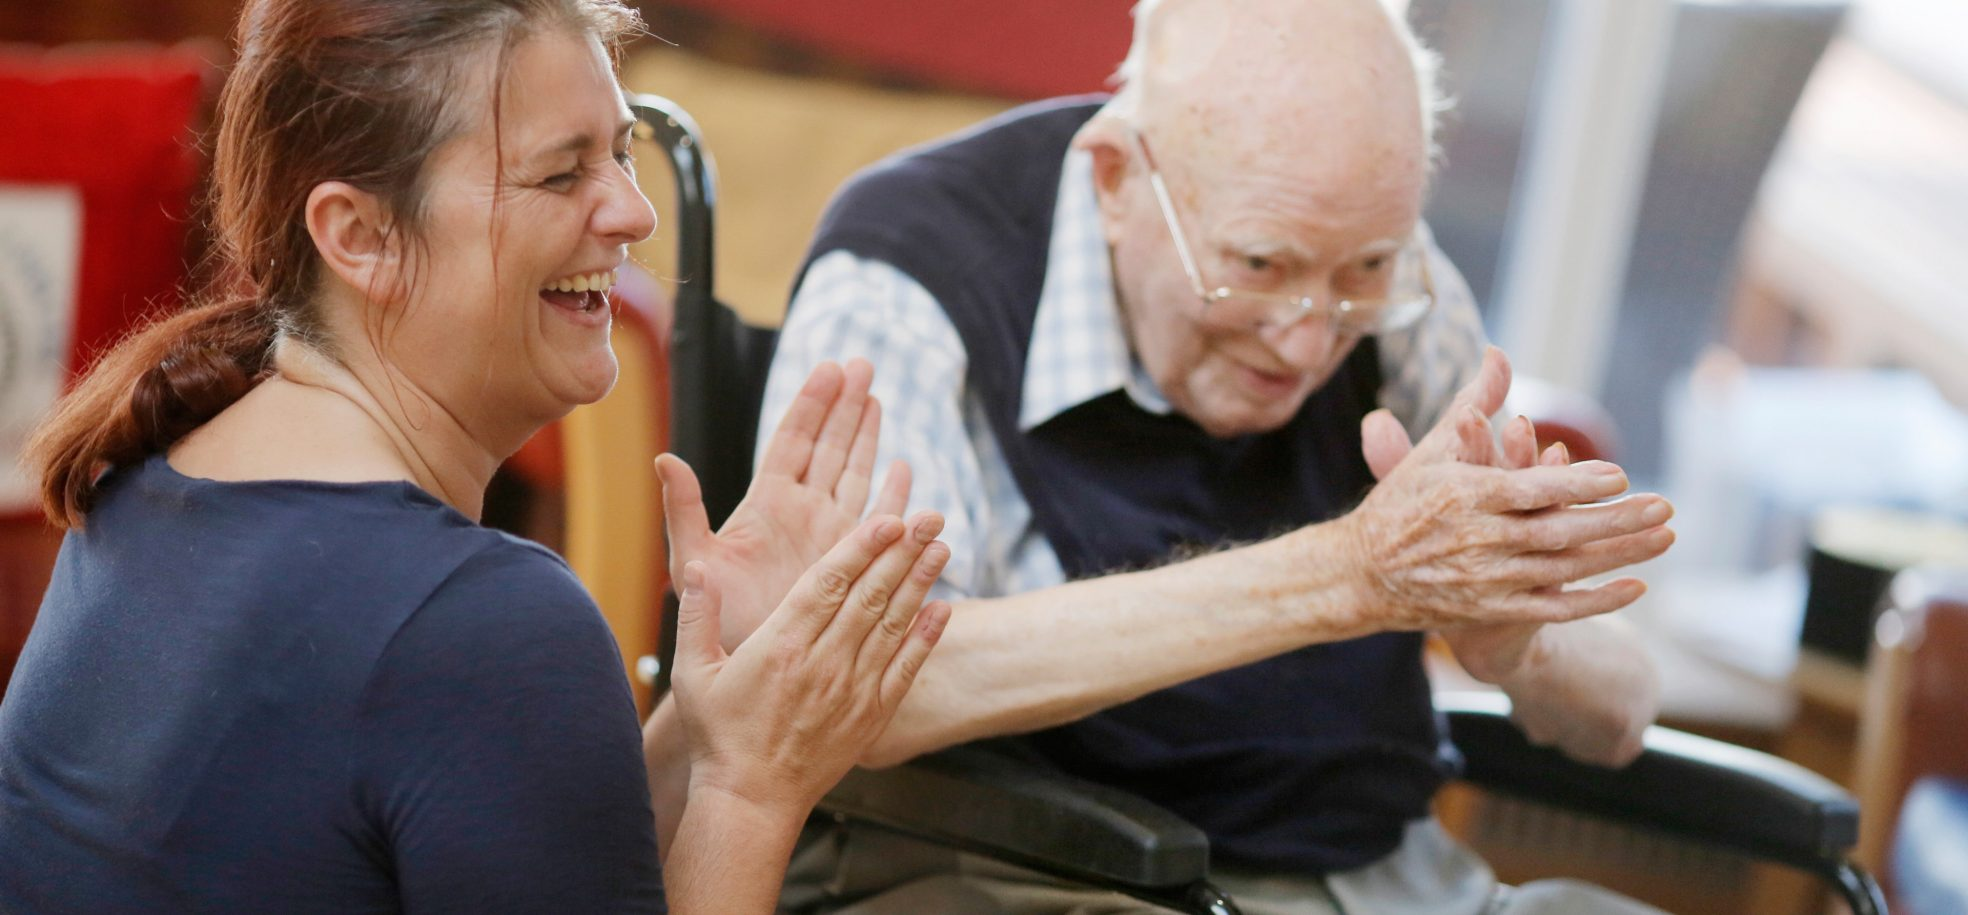 Resident and staff member clapping hands at The Tithebarn